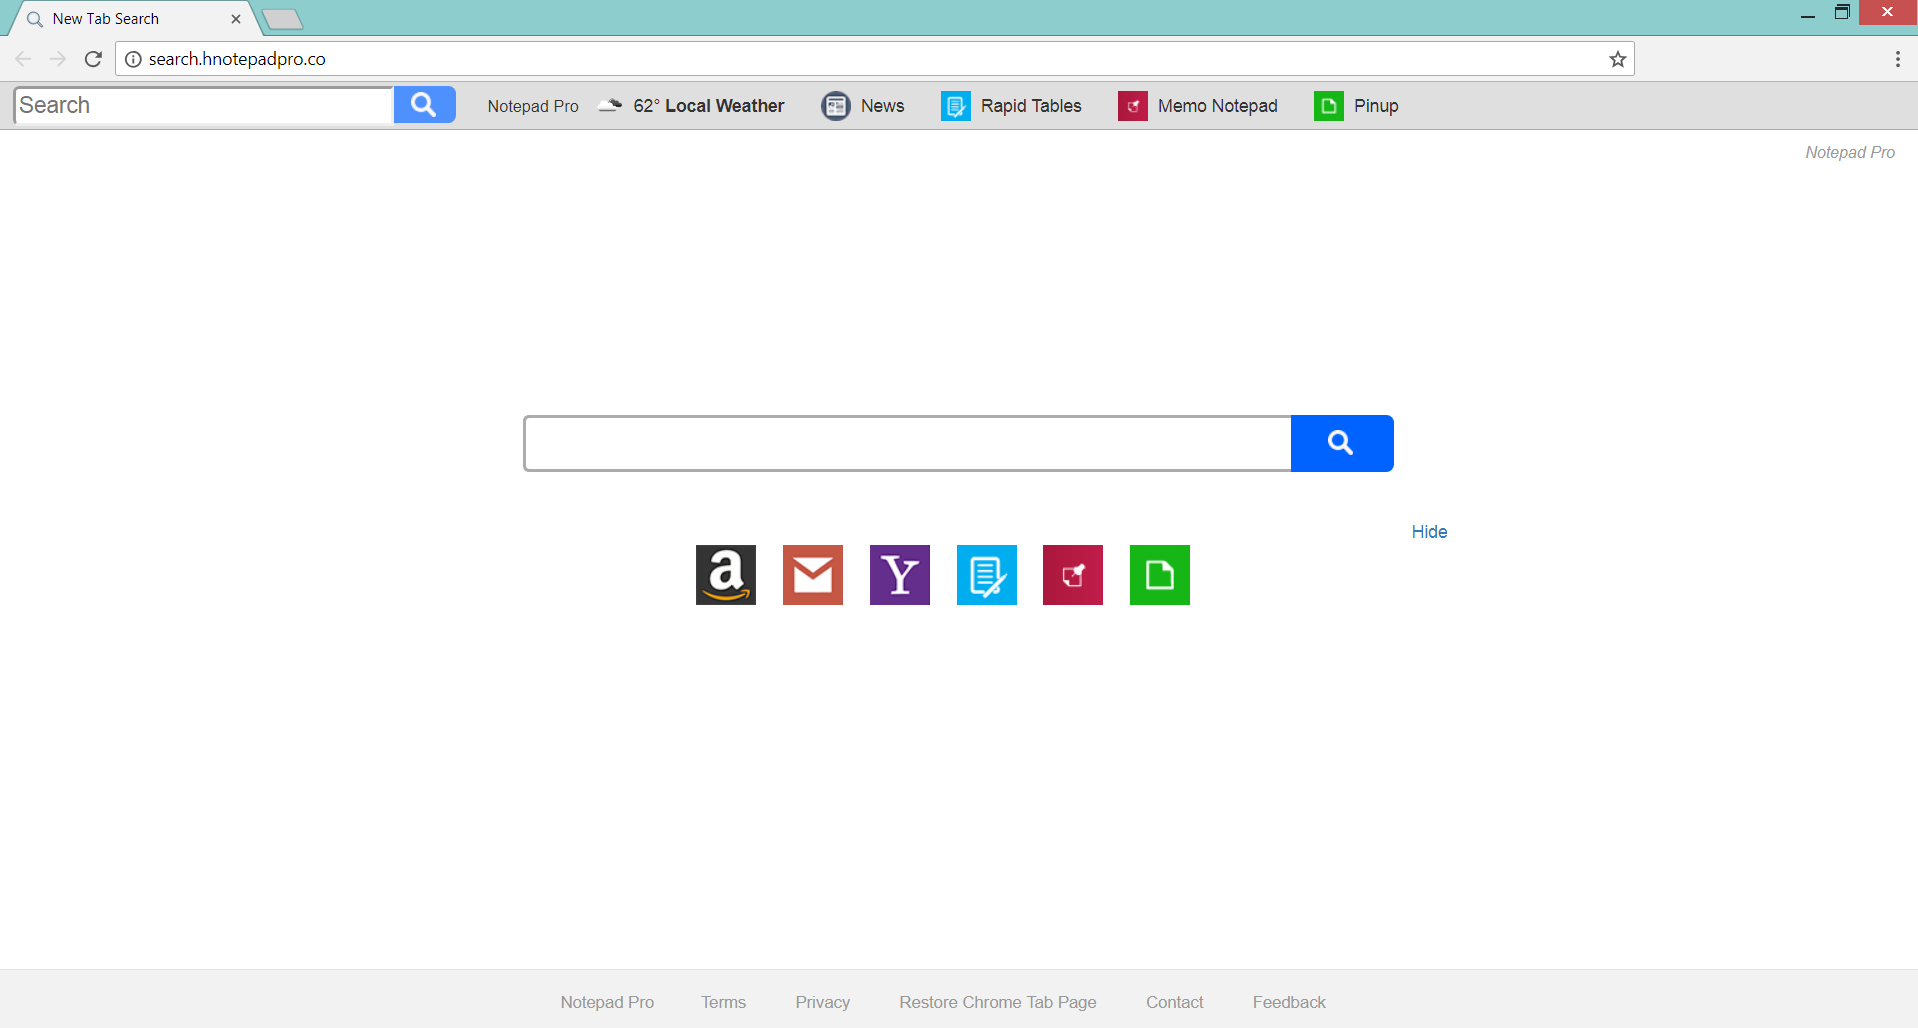 Chrome Brower influenzata da Search.hnotepadpro.co dirottatore del browser